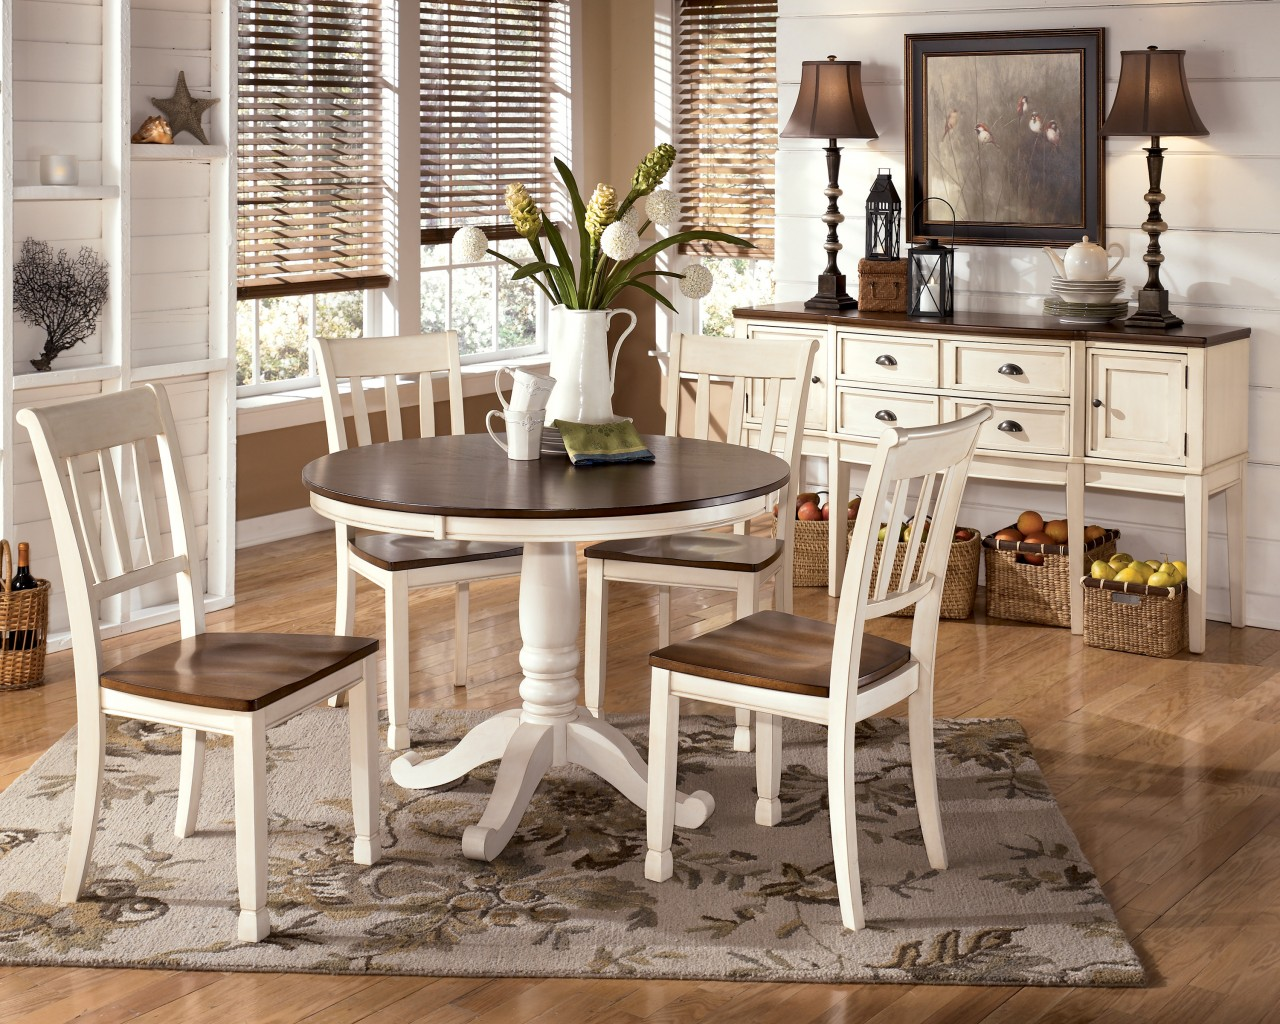 Rugs For Rustic Dining Rooms